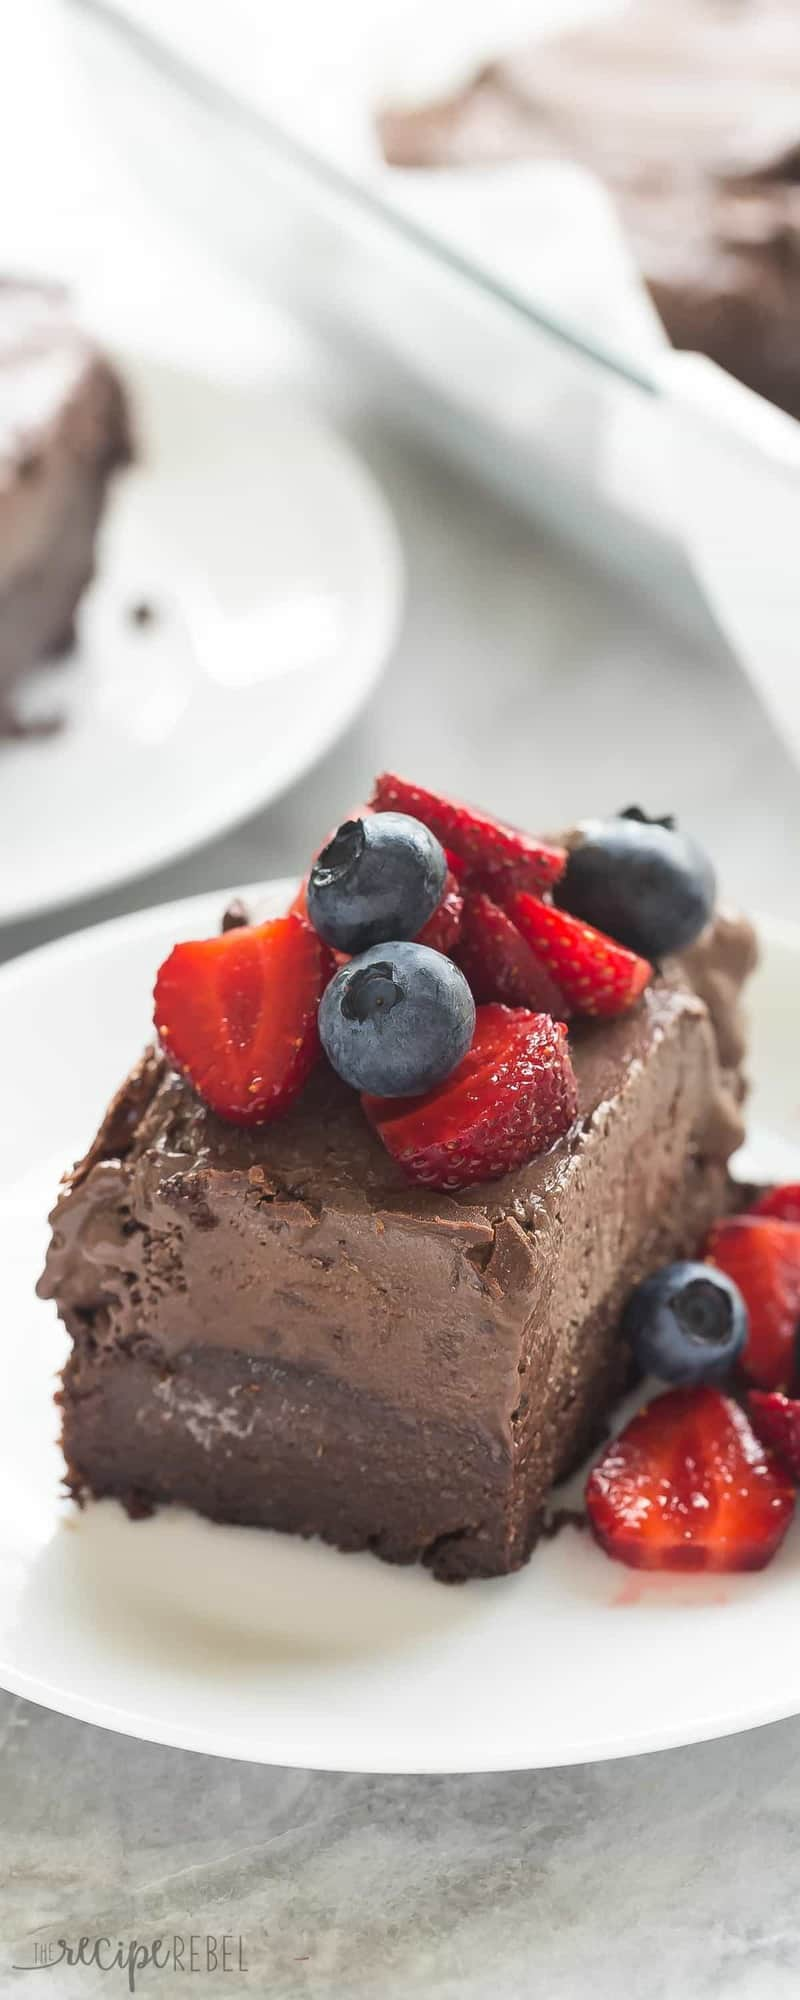 These Frozen Chocolate Truffle Brownie Bars are the perfect summer treat for chocolate lovers! They are rich and creamy and you'd never know they are vegan, gluten free and dairy free.